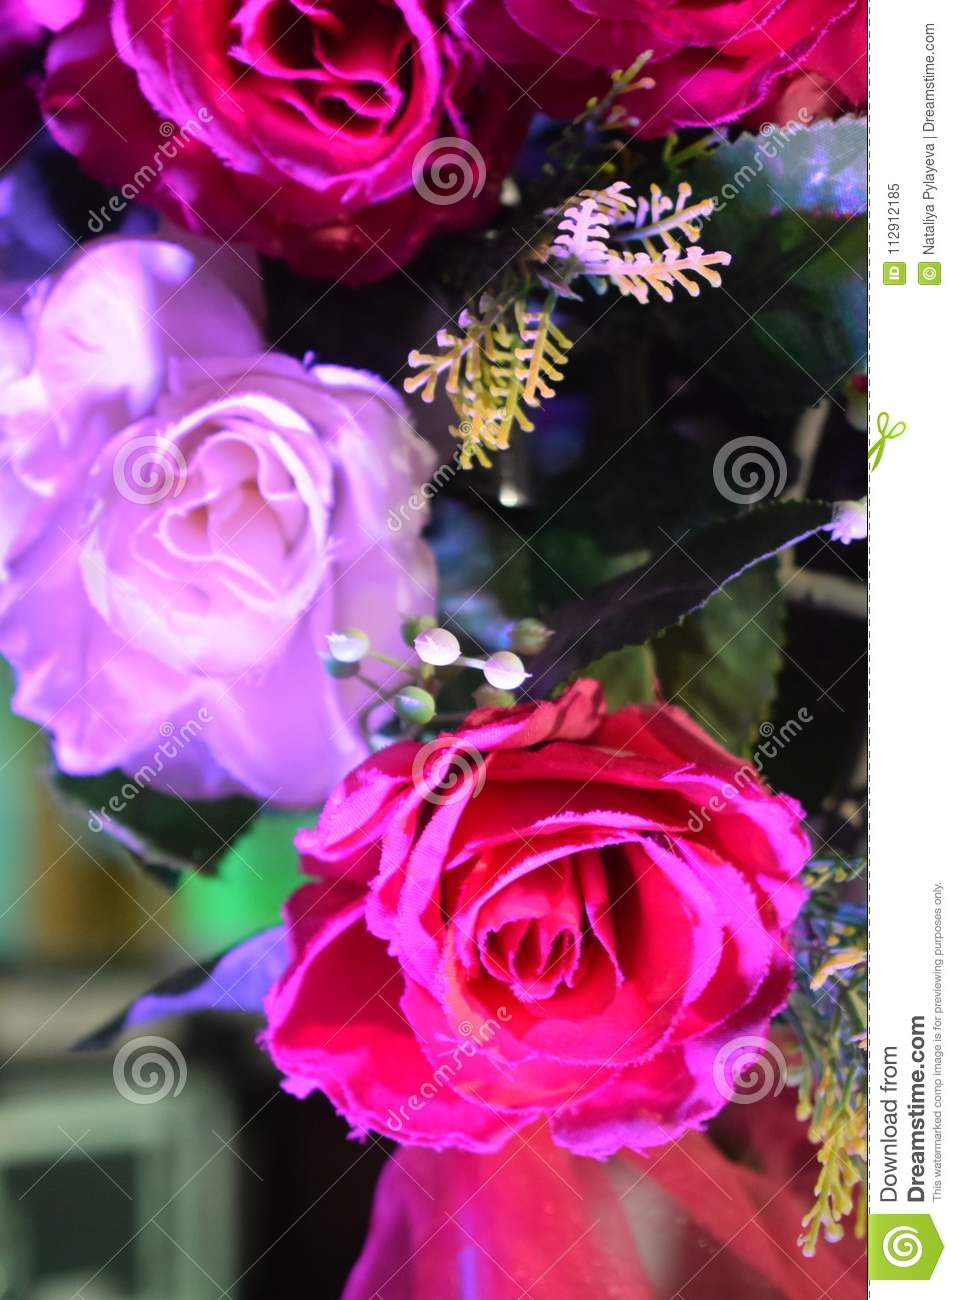 Decorative Artificial Pink Flower Roses Decoration On The Wedding